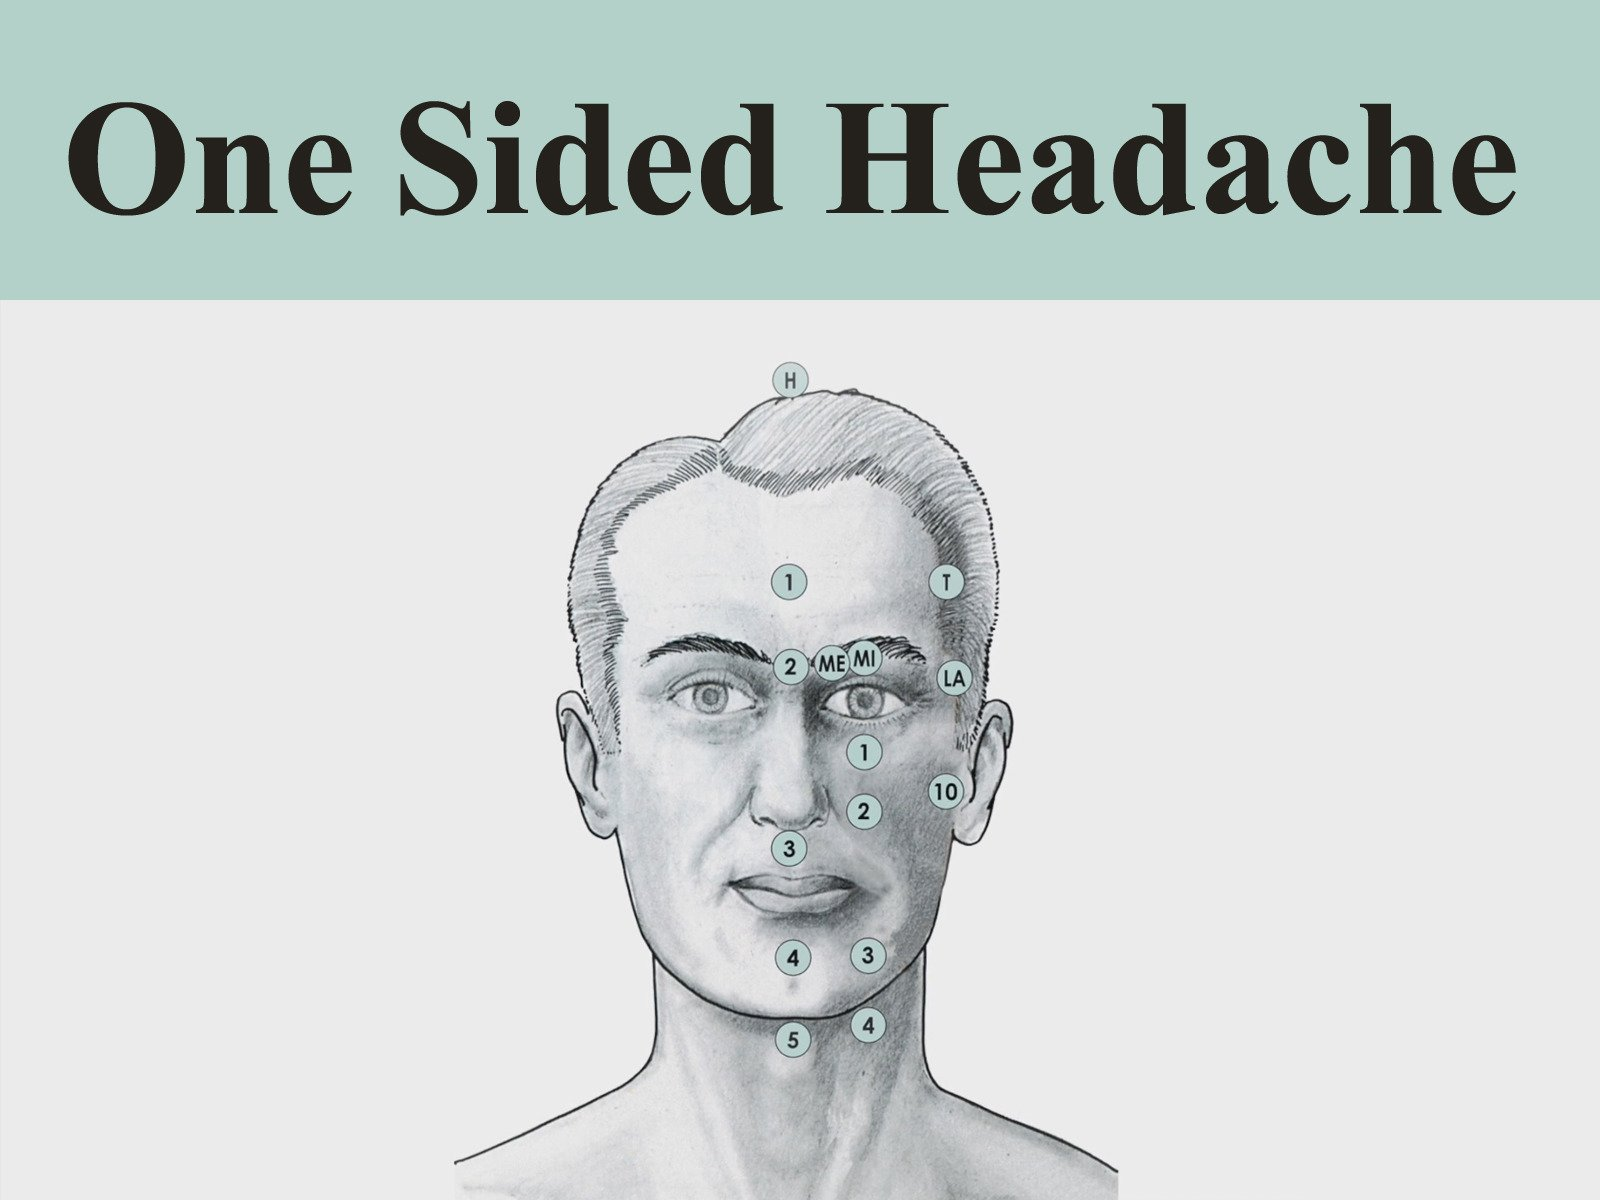 Treatment Routine 2: One-Sided Headache by